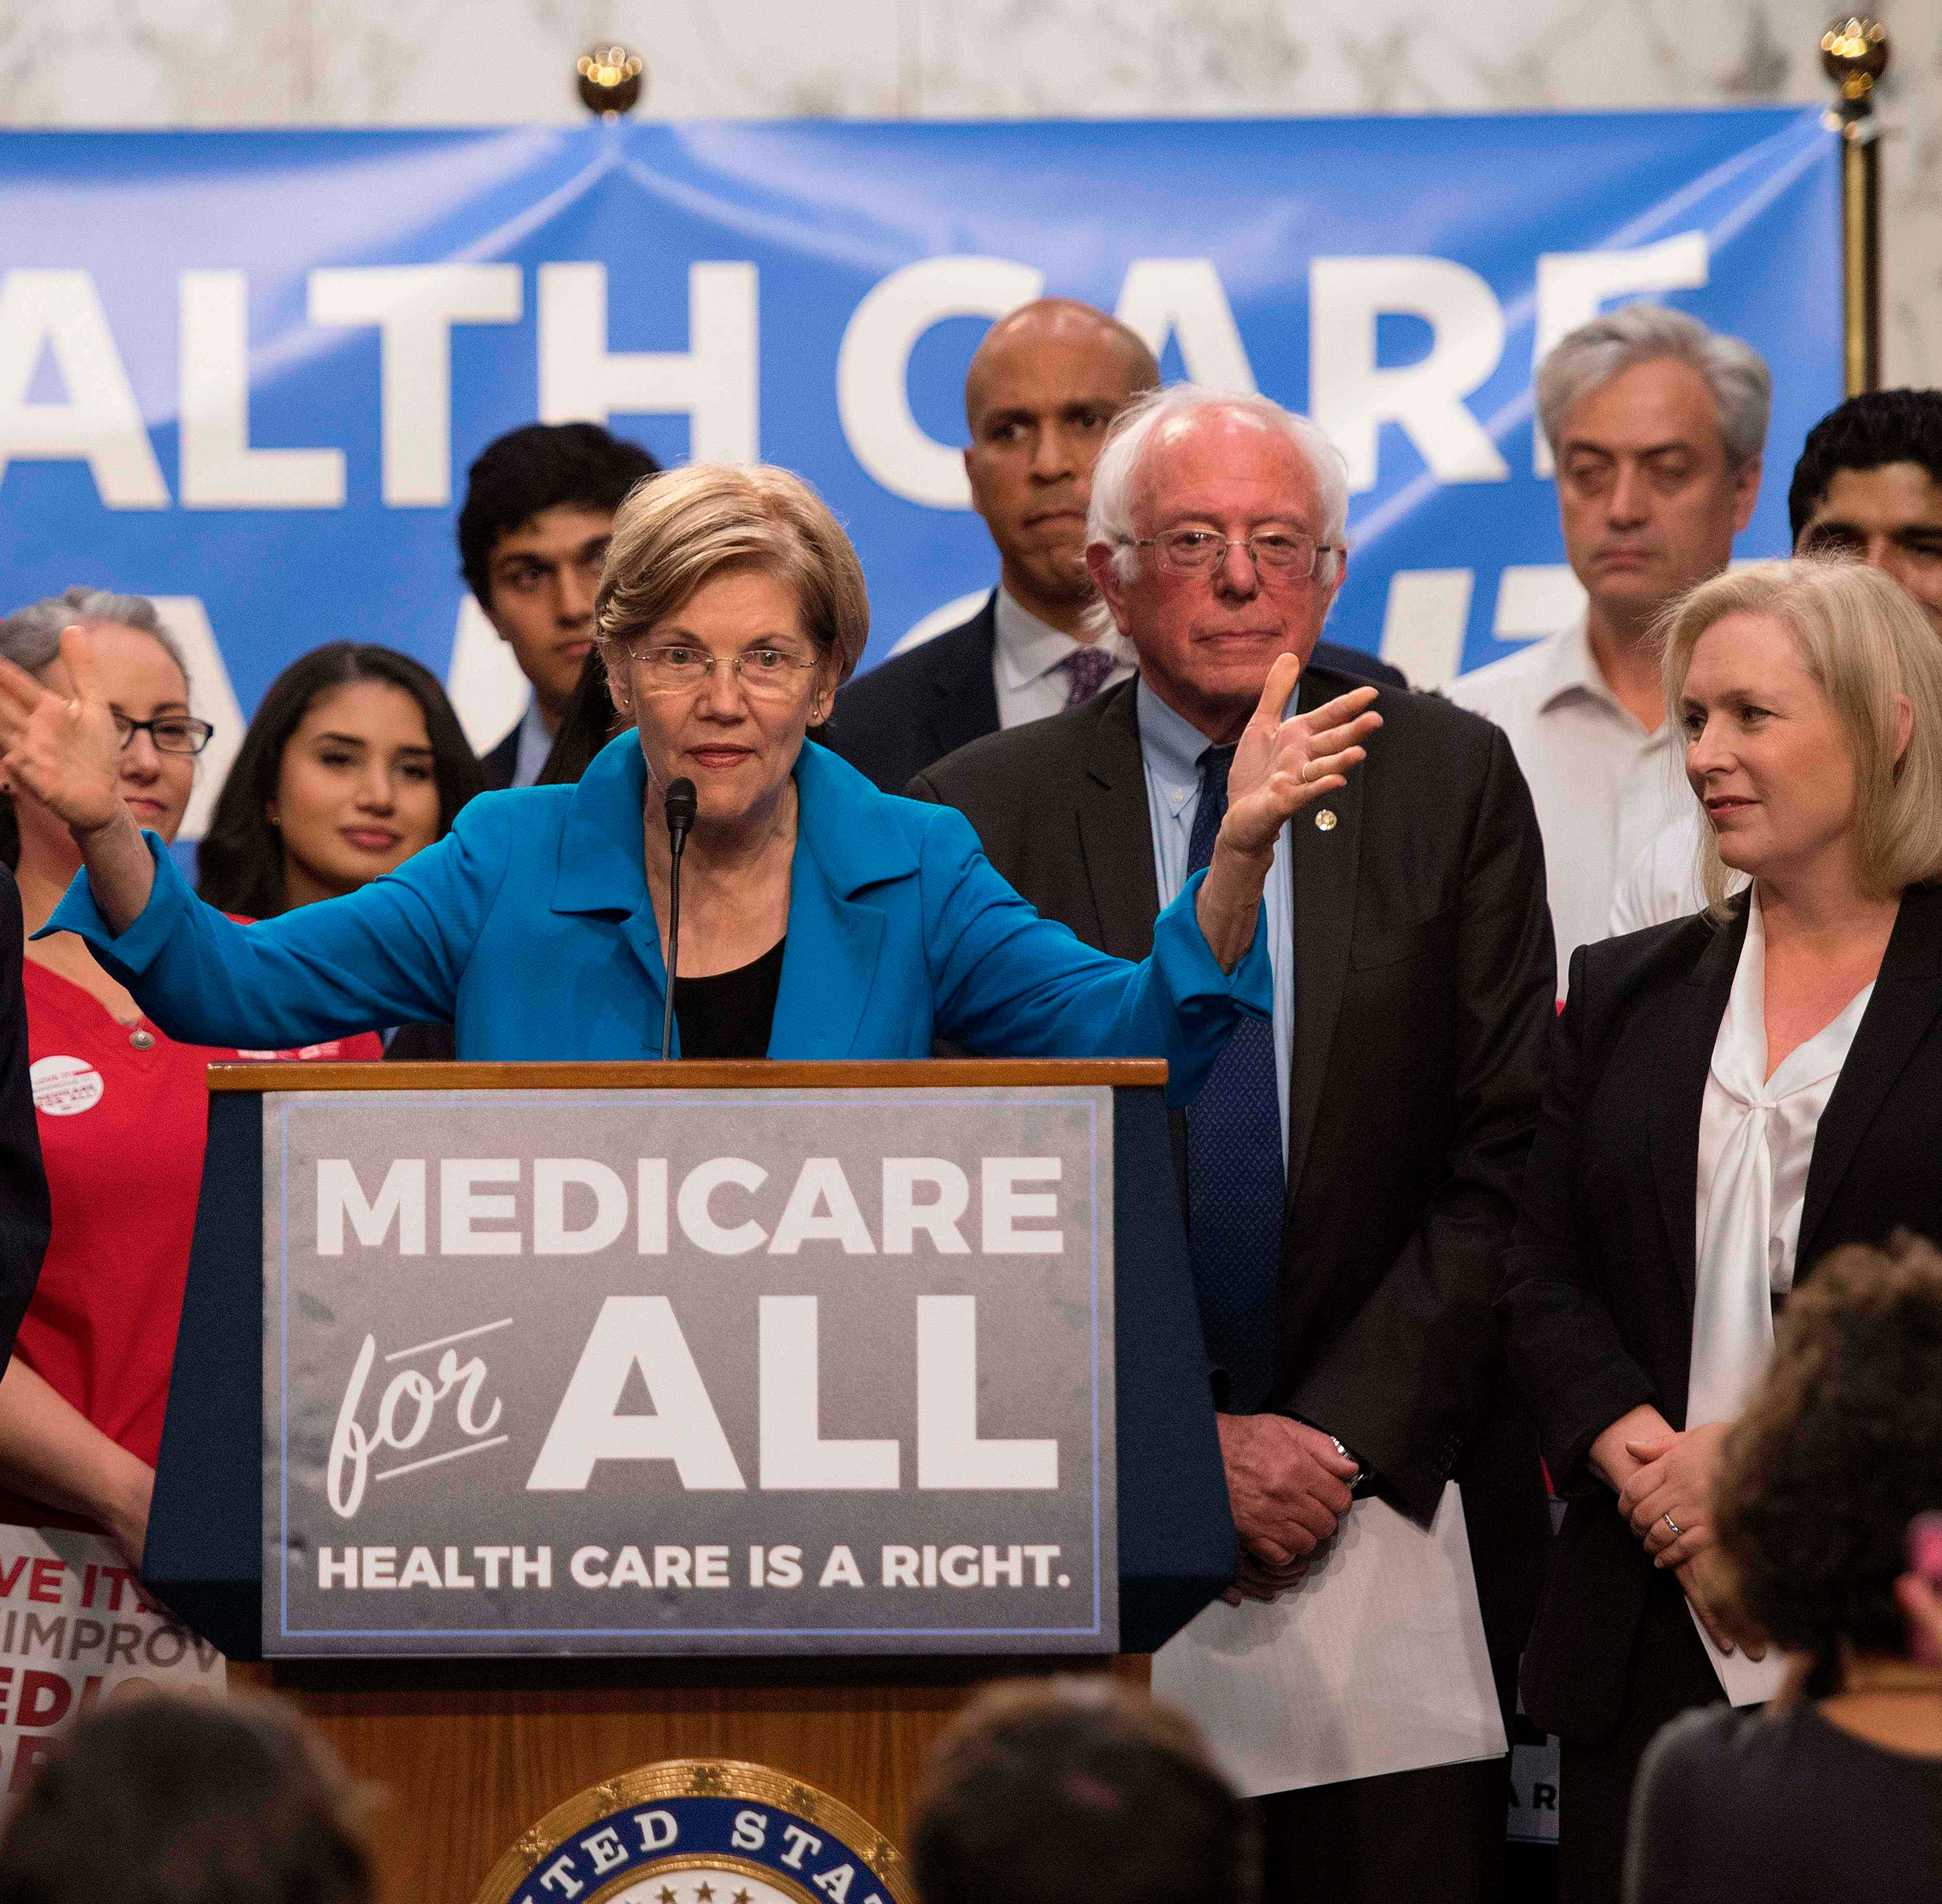 Democrats' promise of Medicare for All is remarkably misguided and unrealistic